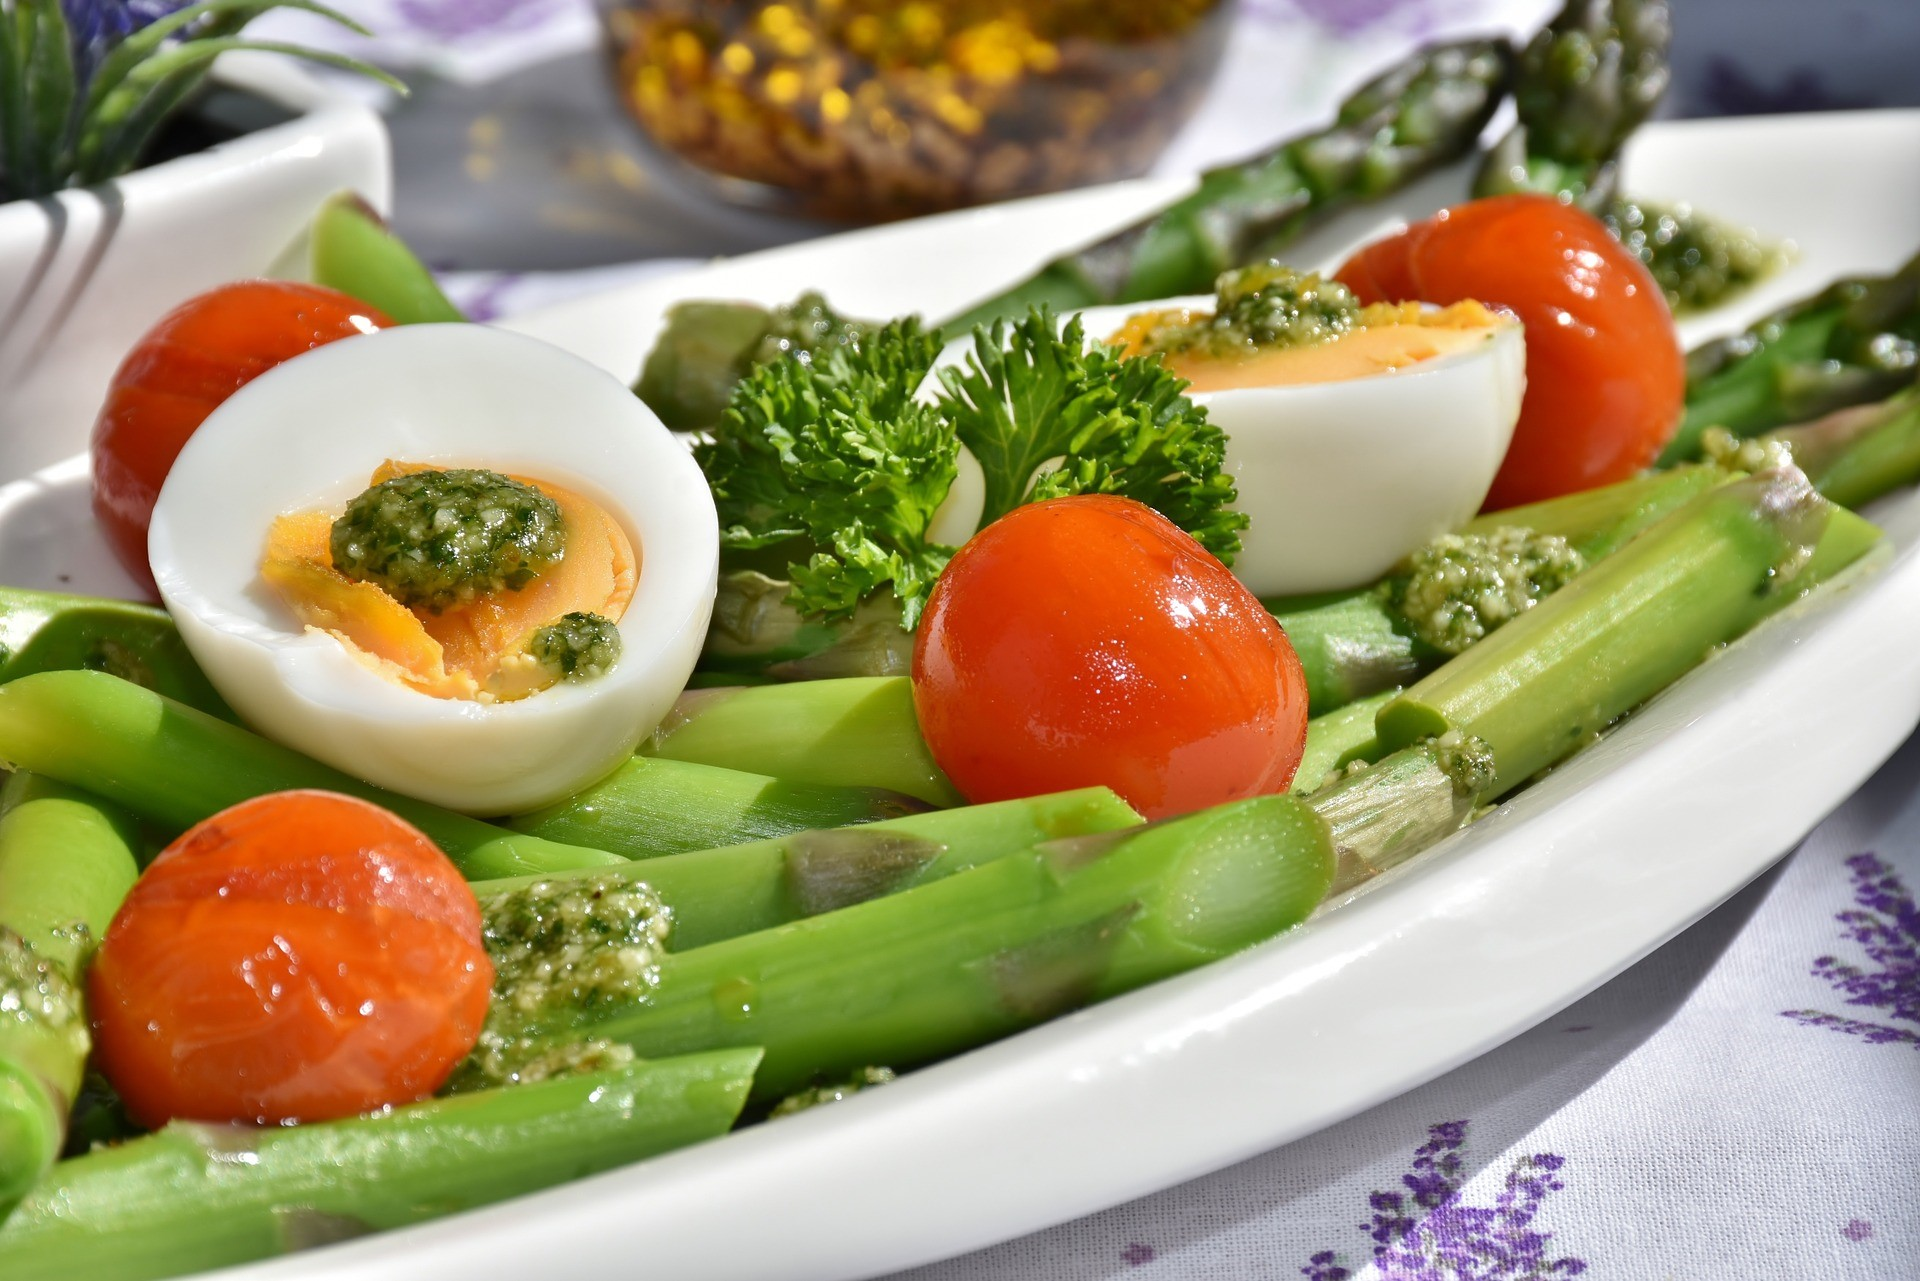 Vegetables are good weight loss foods